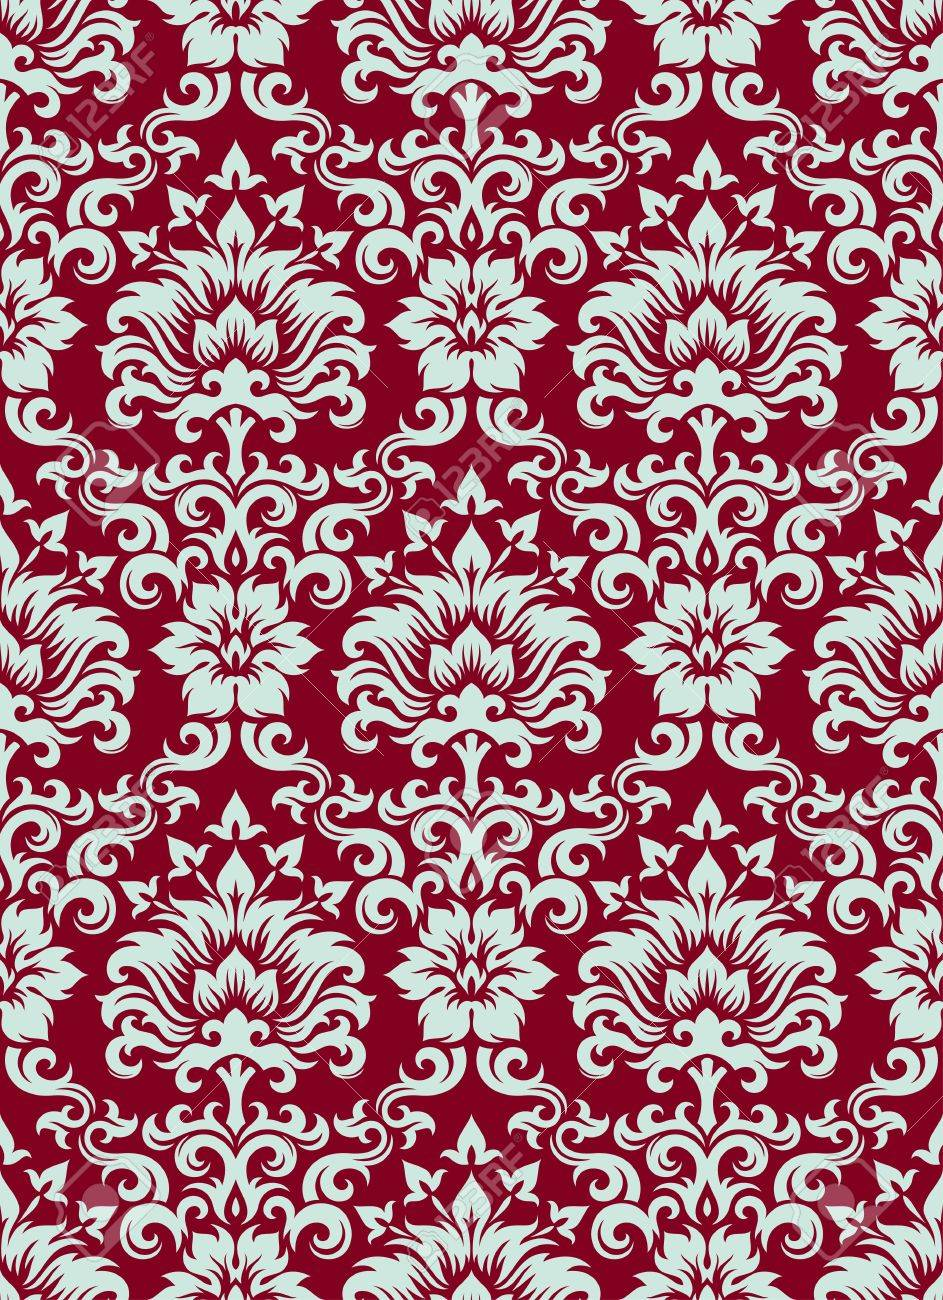 Seamless background from a floral ornament, Fashionable modern wallpaper or textile Stock Vector - 7031983